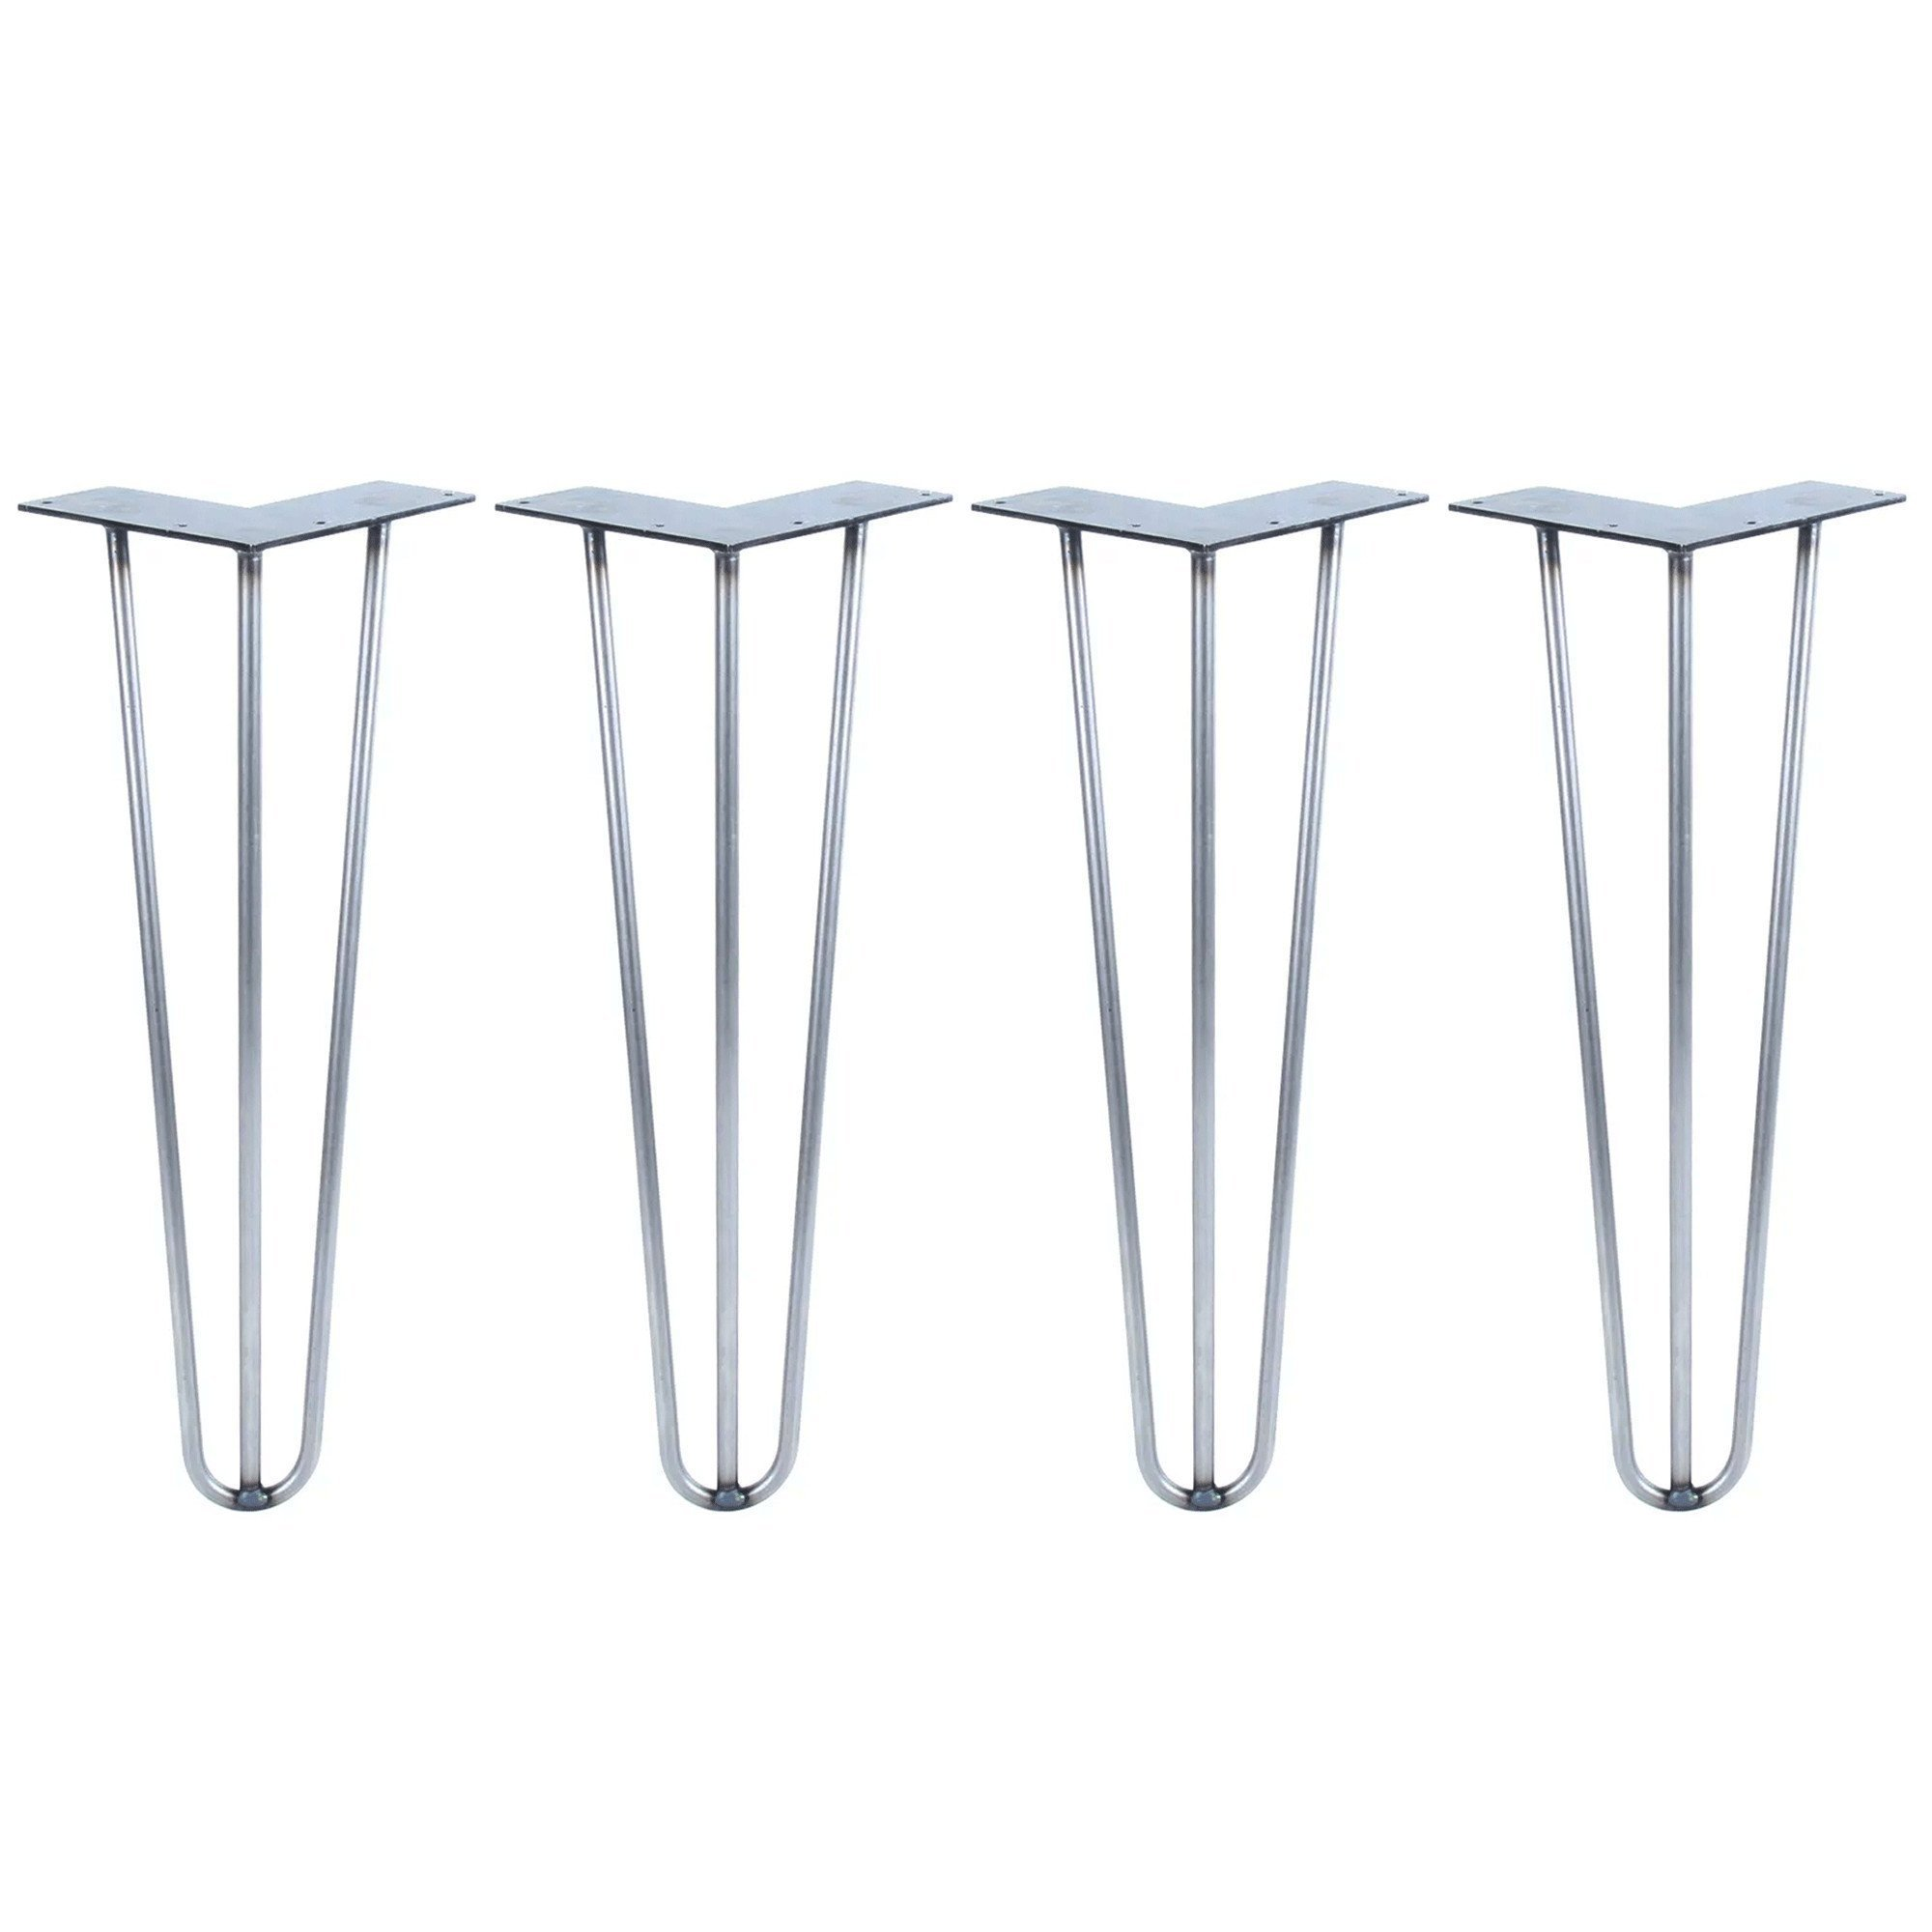 Hairpin Legs Set of 4 - Cold Rolled Steel - Raw and Color Available - Made in The USA (20'' Tall, 3/8'' Diameter - Raw Steel- Shipped as Set of 4 Legs)